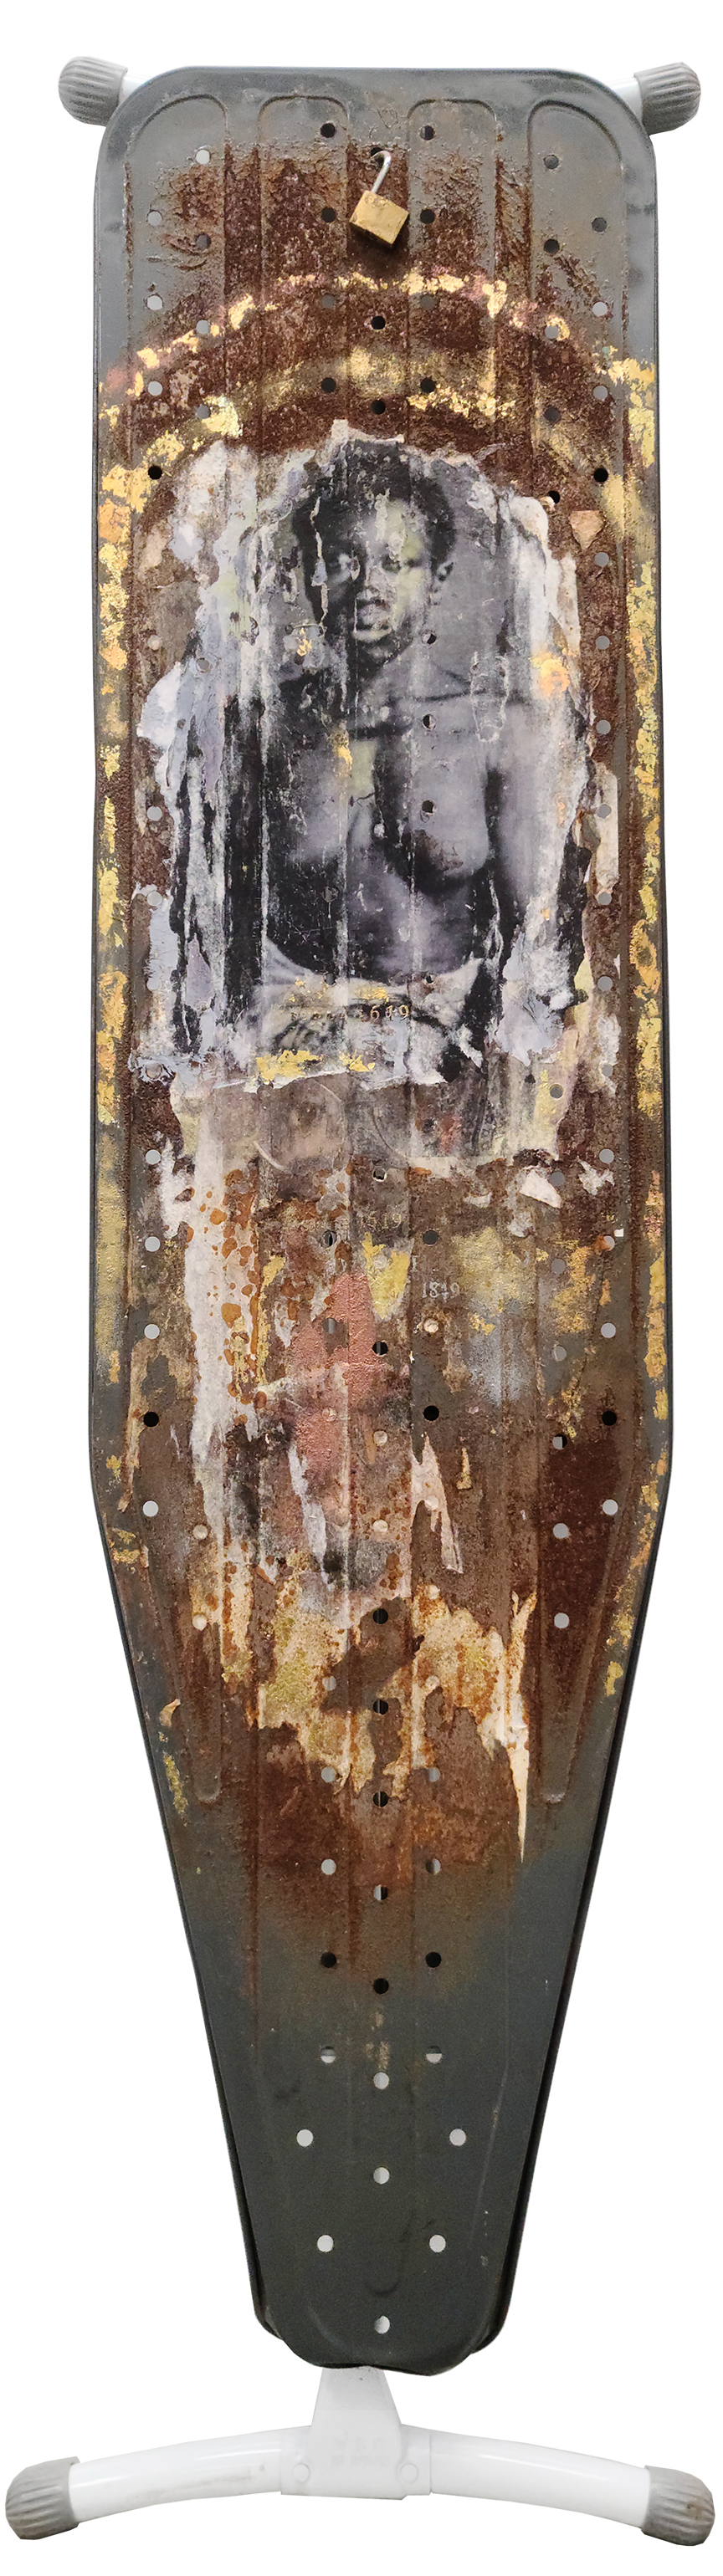 transfer print & gold leaf on ironing board, embossing, found objects